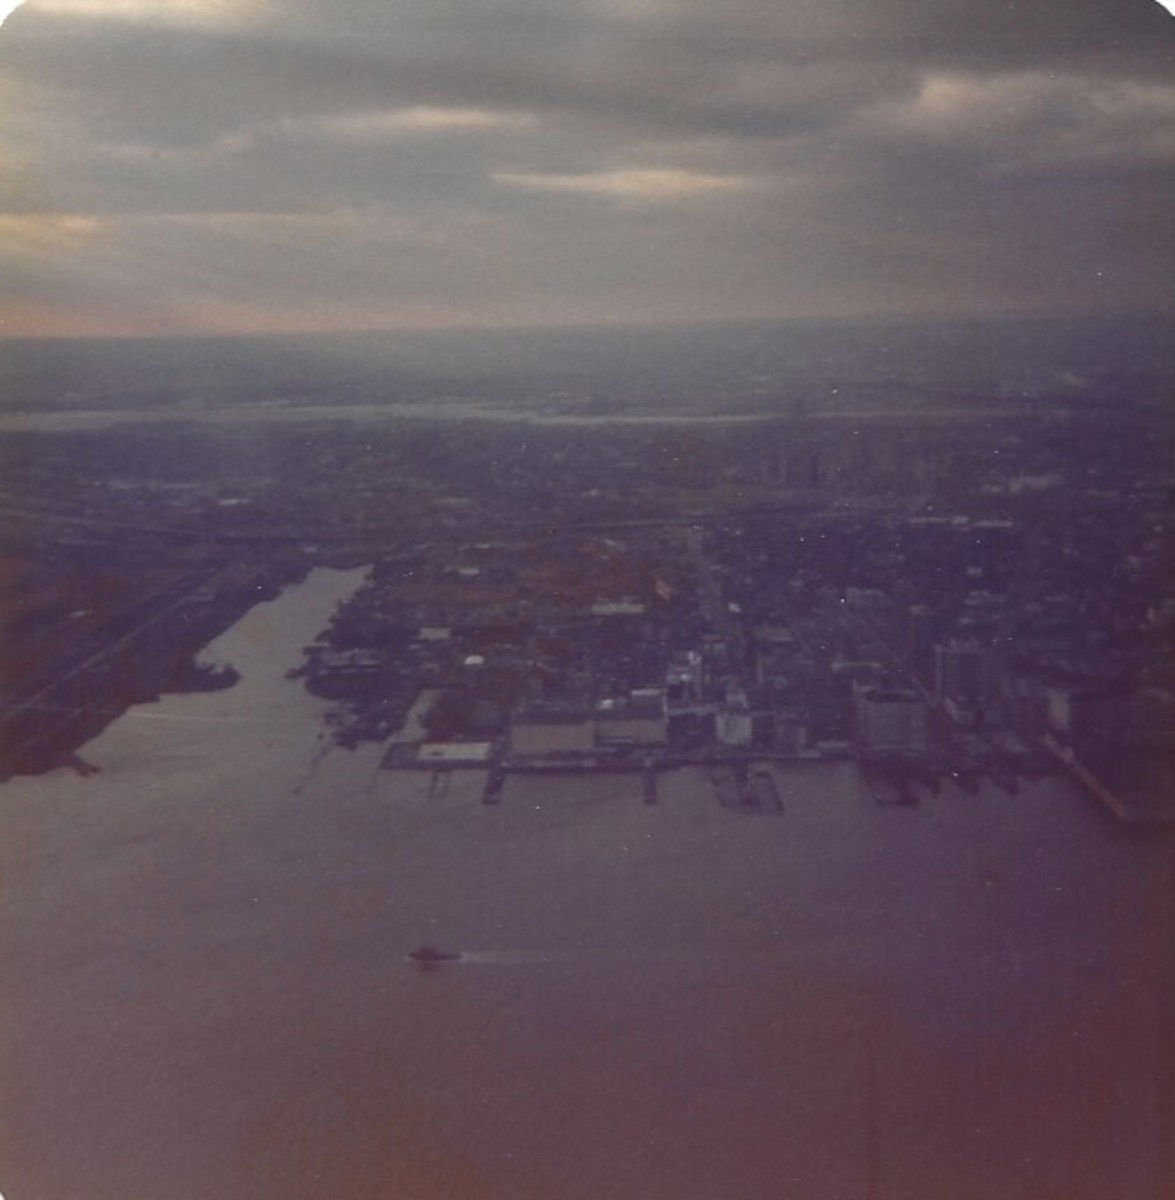 View from the observation deck of the World Trade Center, December 1979.